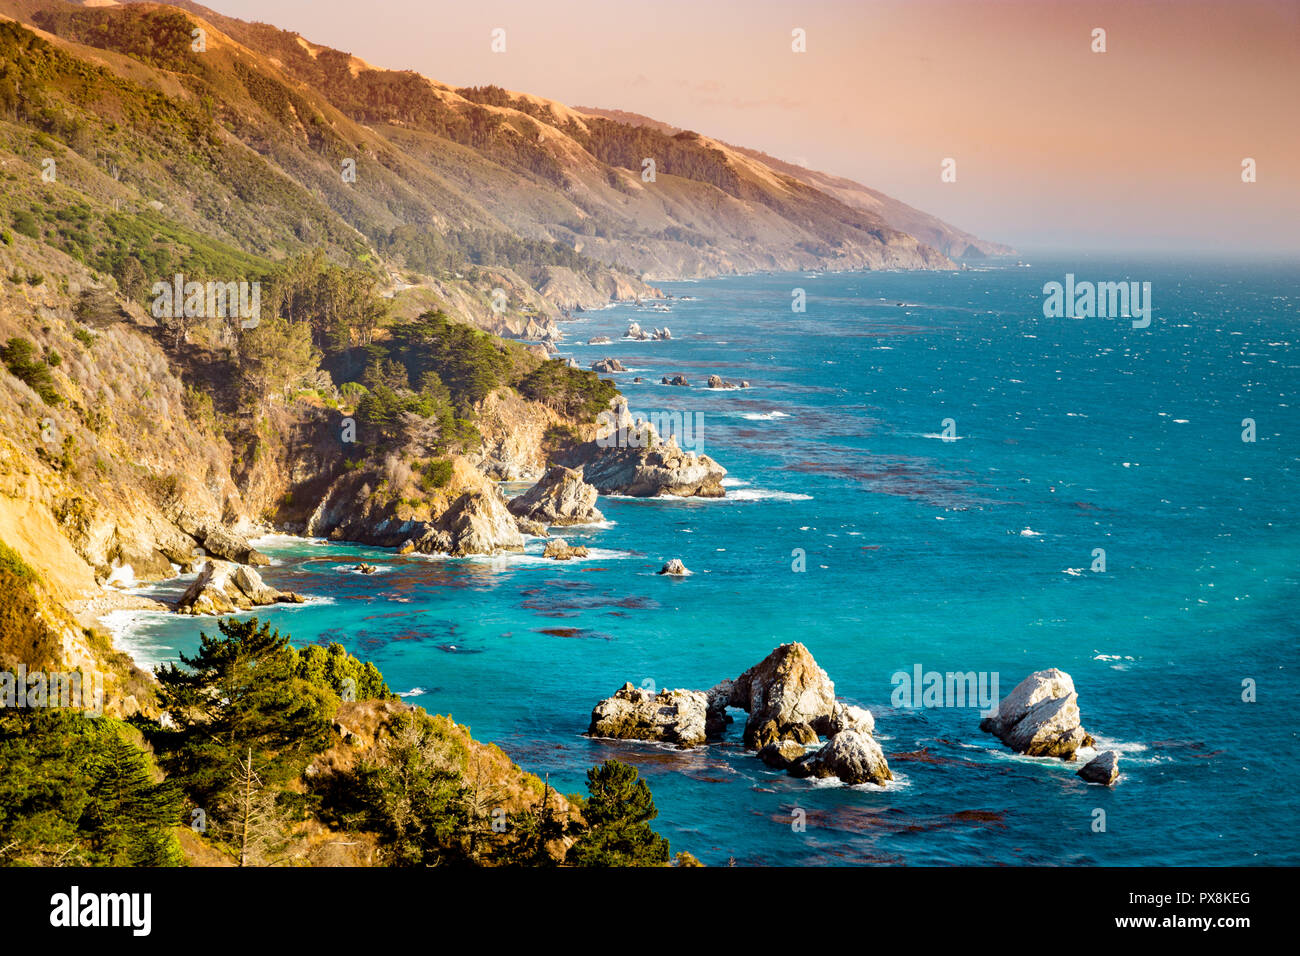 Scenic view of the rugged coastline of Big Sur with Santa Lucia Mountains along famous Highway 1 illuminated in beautiful golden evening light at suns - Stock Image